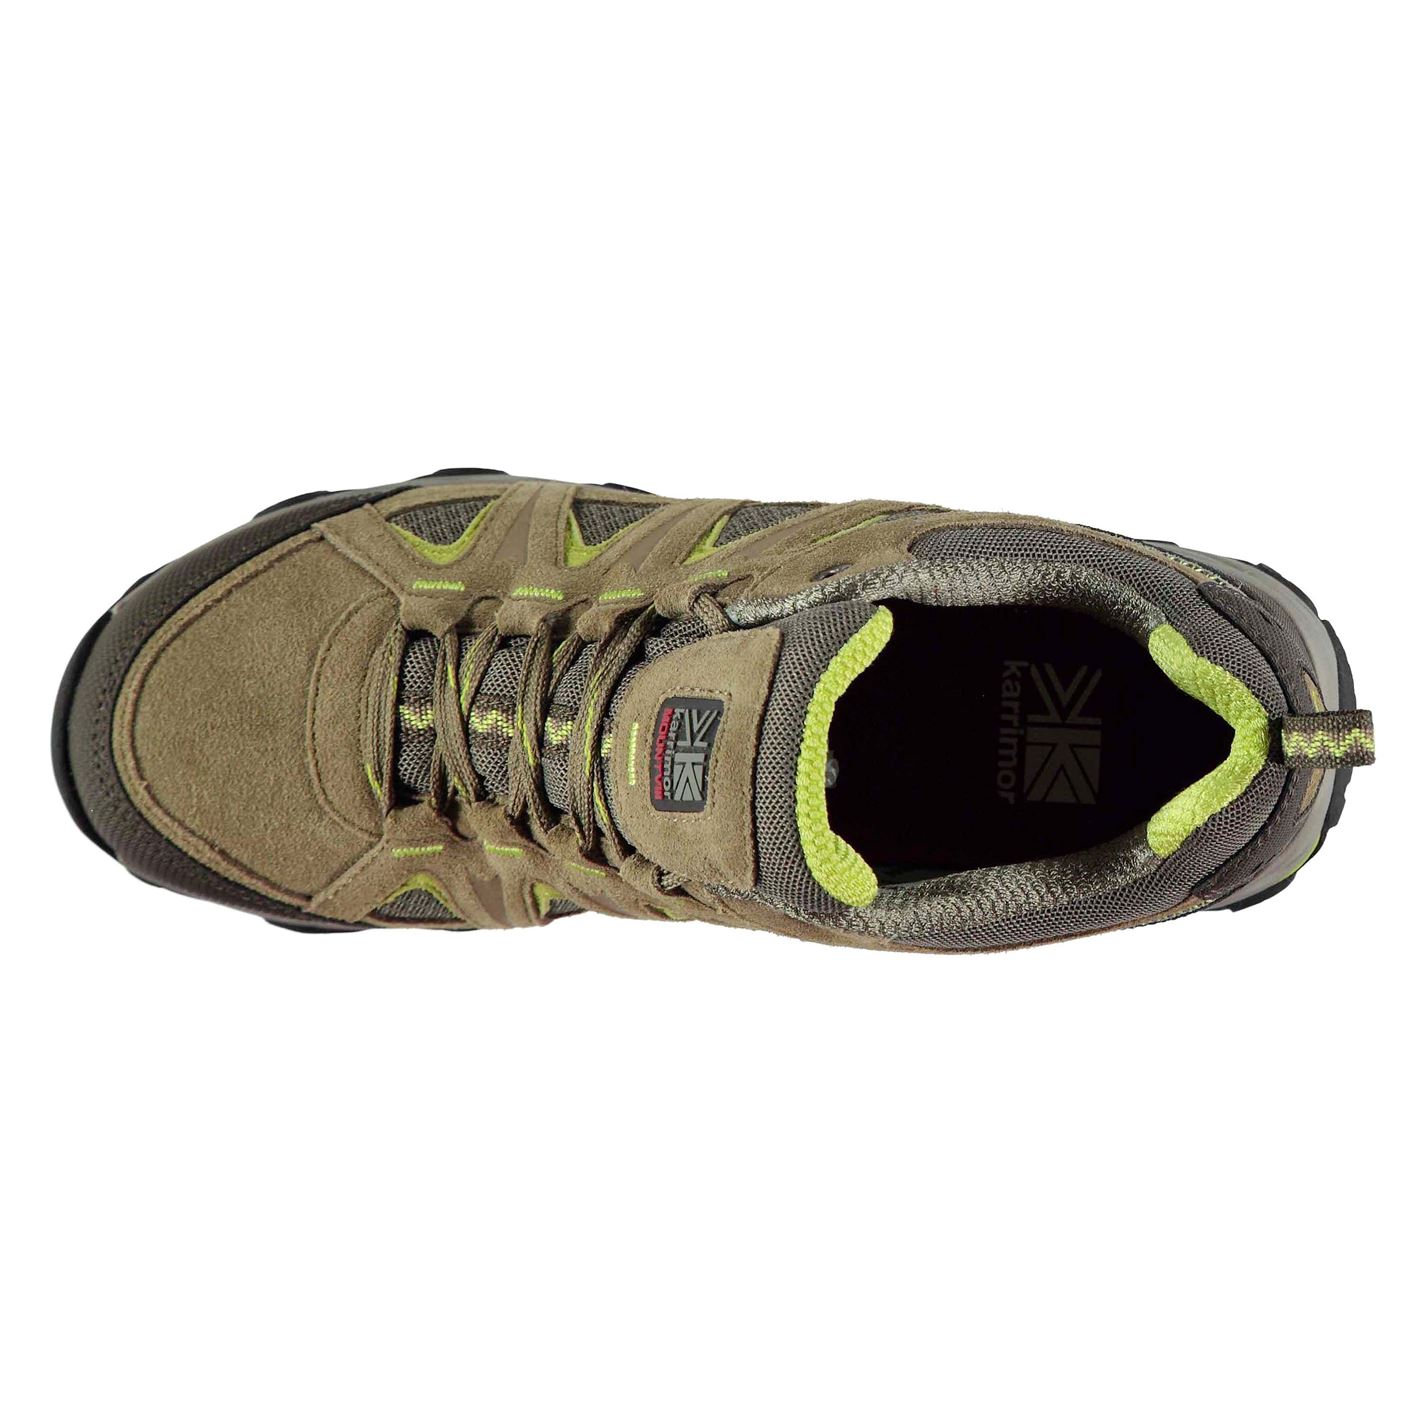 Karrimor-Womens-Mount-Low-Ladies-Walking-Shoes-Waterproof-Laced-Hiking-Trainers thumbnail 19